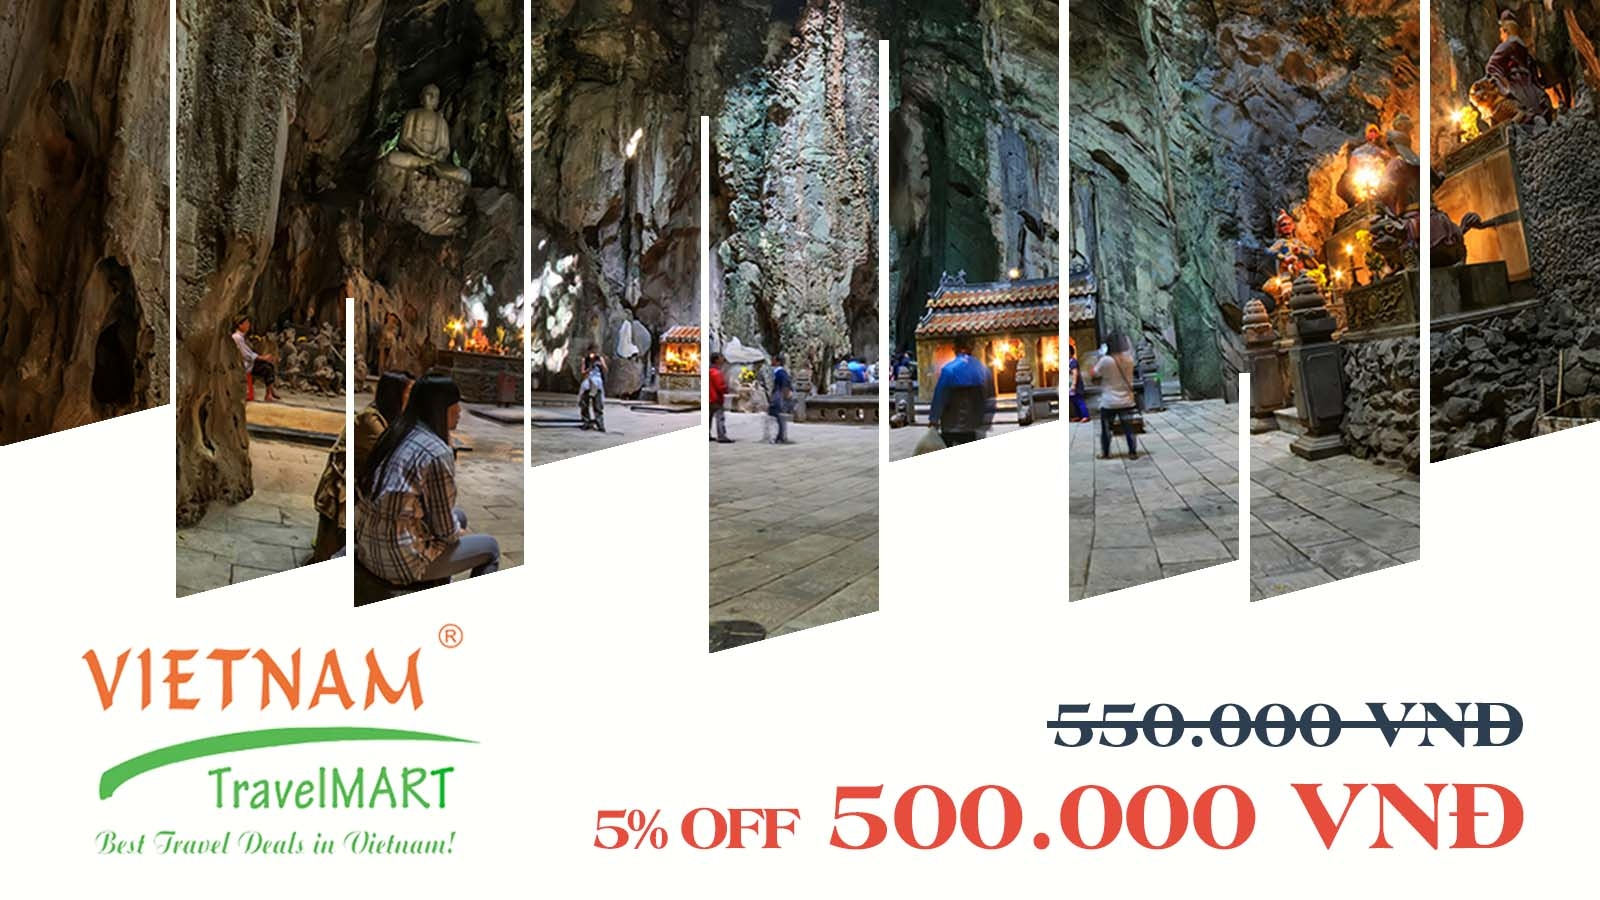 Vietnam TravelMART JSC | 5% off Marble Mountain - Hoi An Ancient Town daily tour